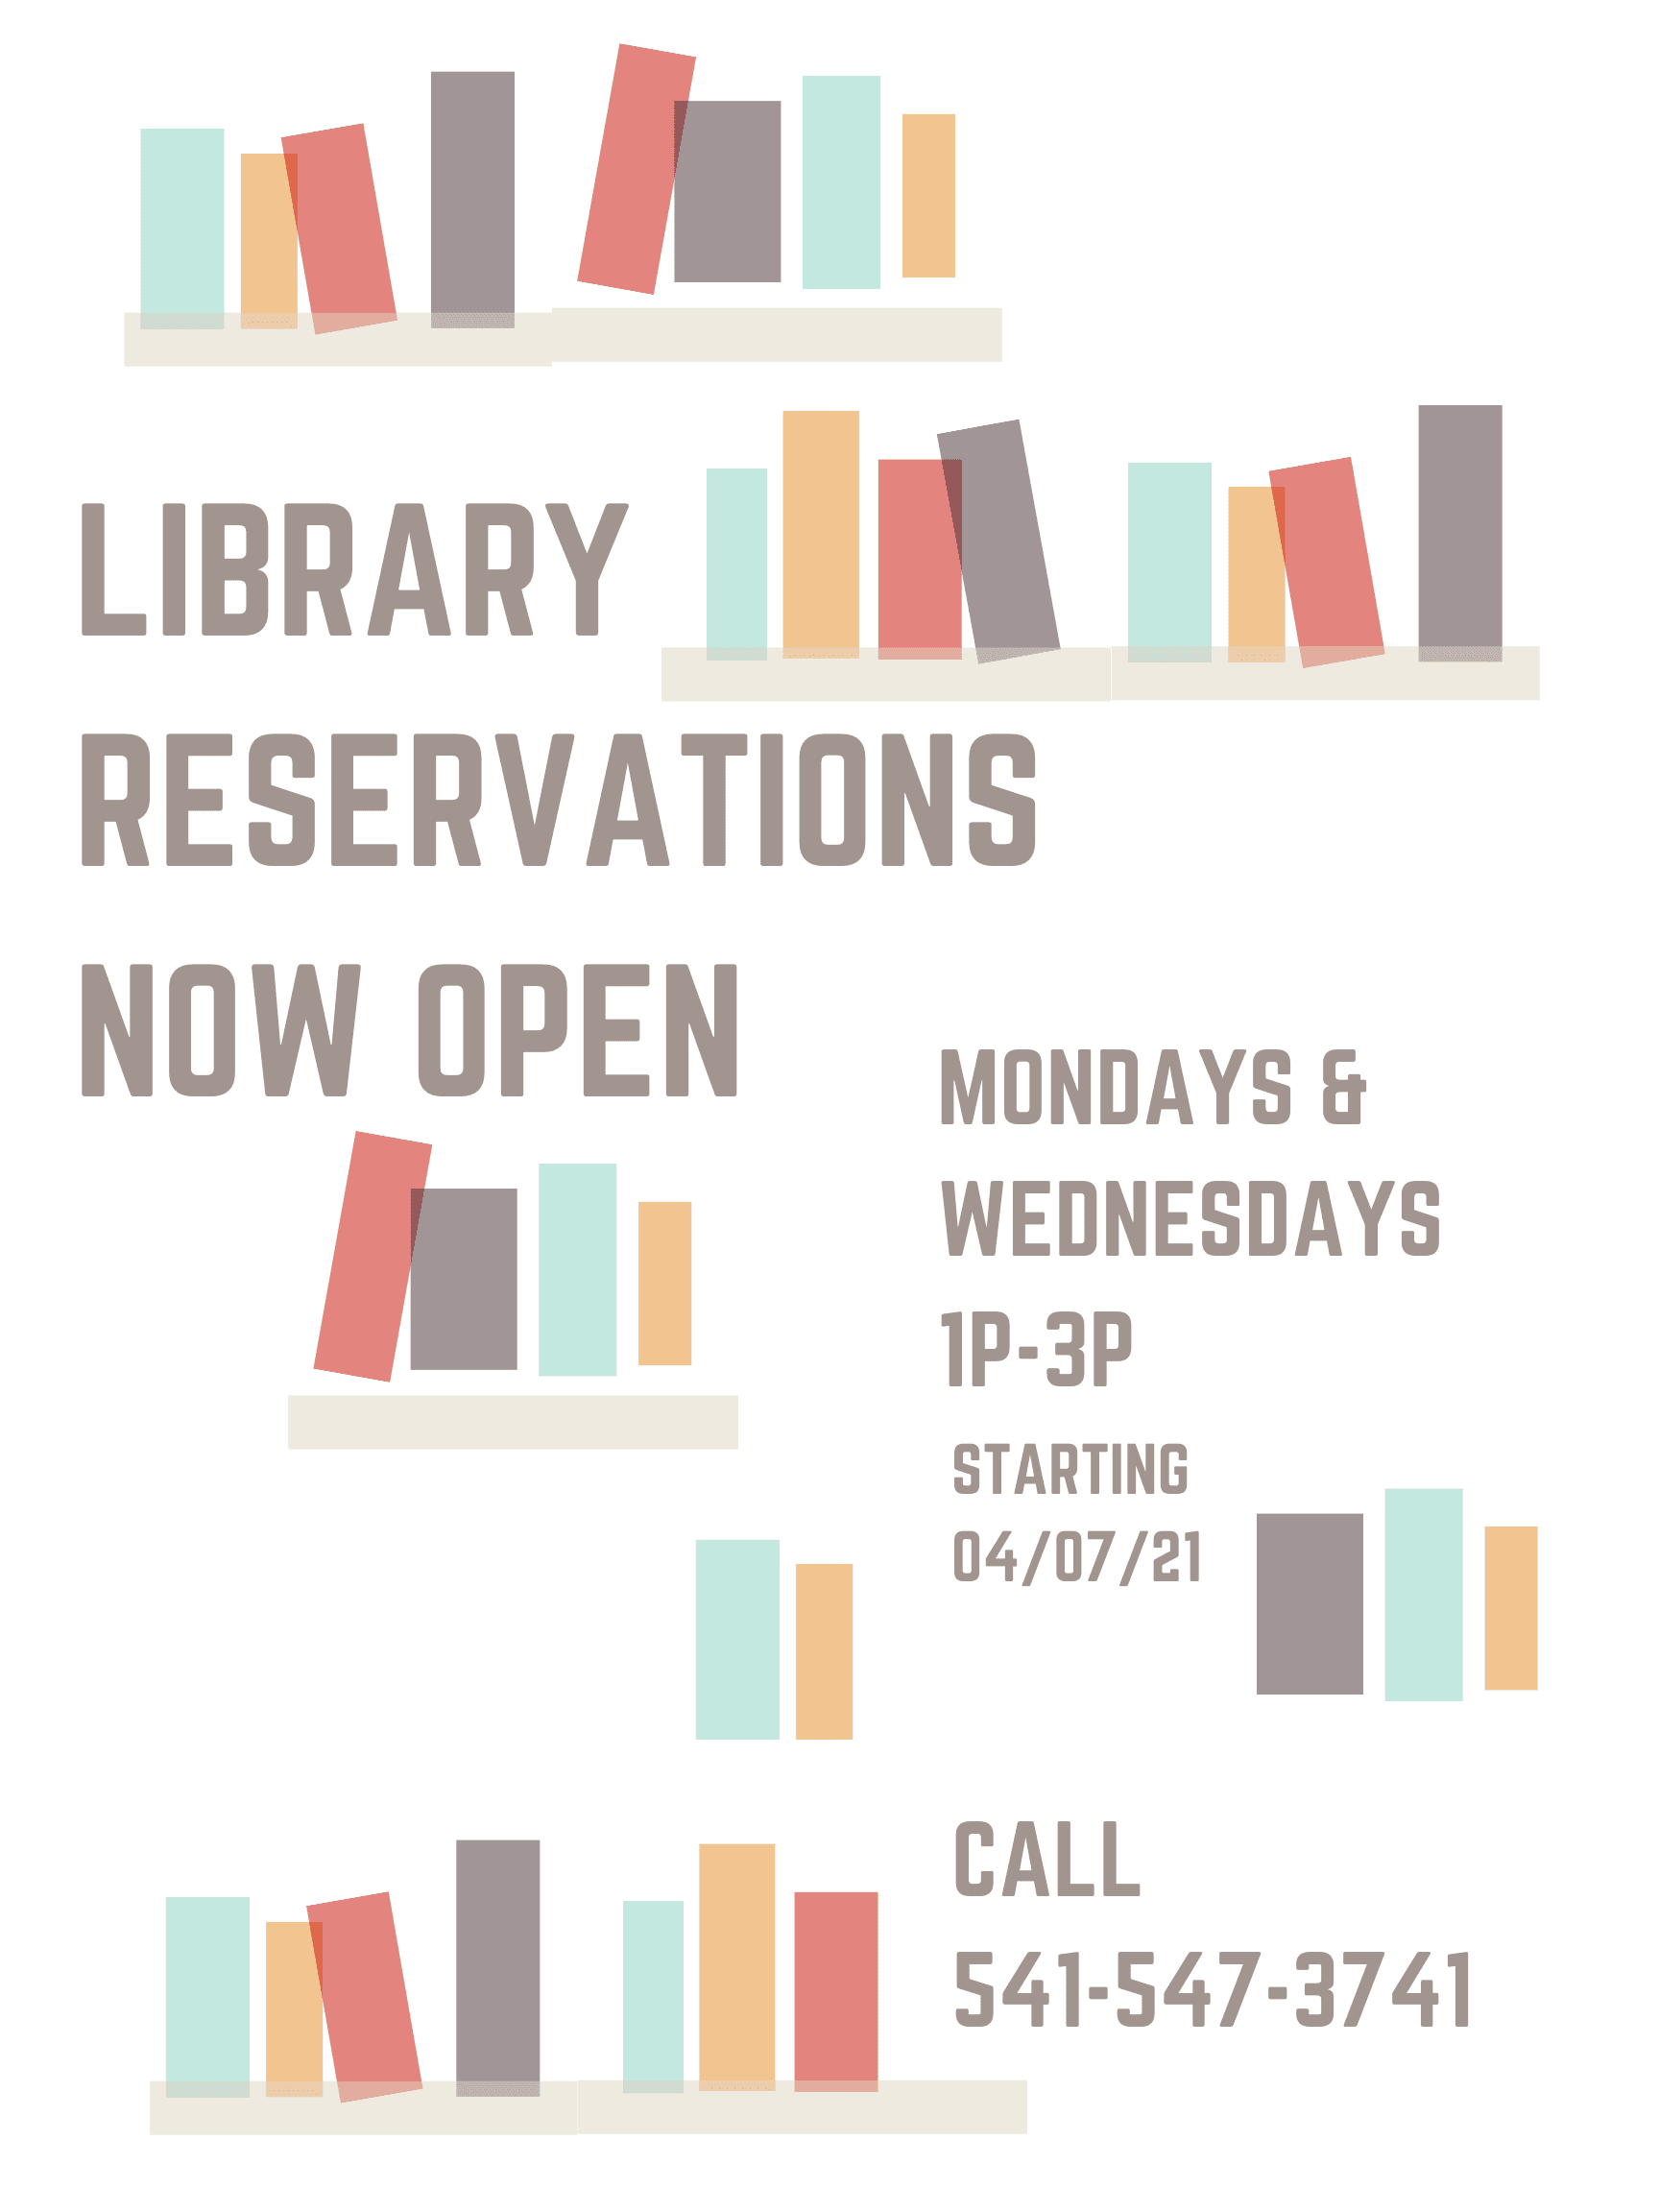 Library Reservations is Open